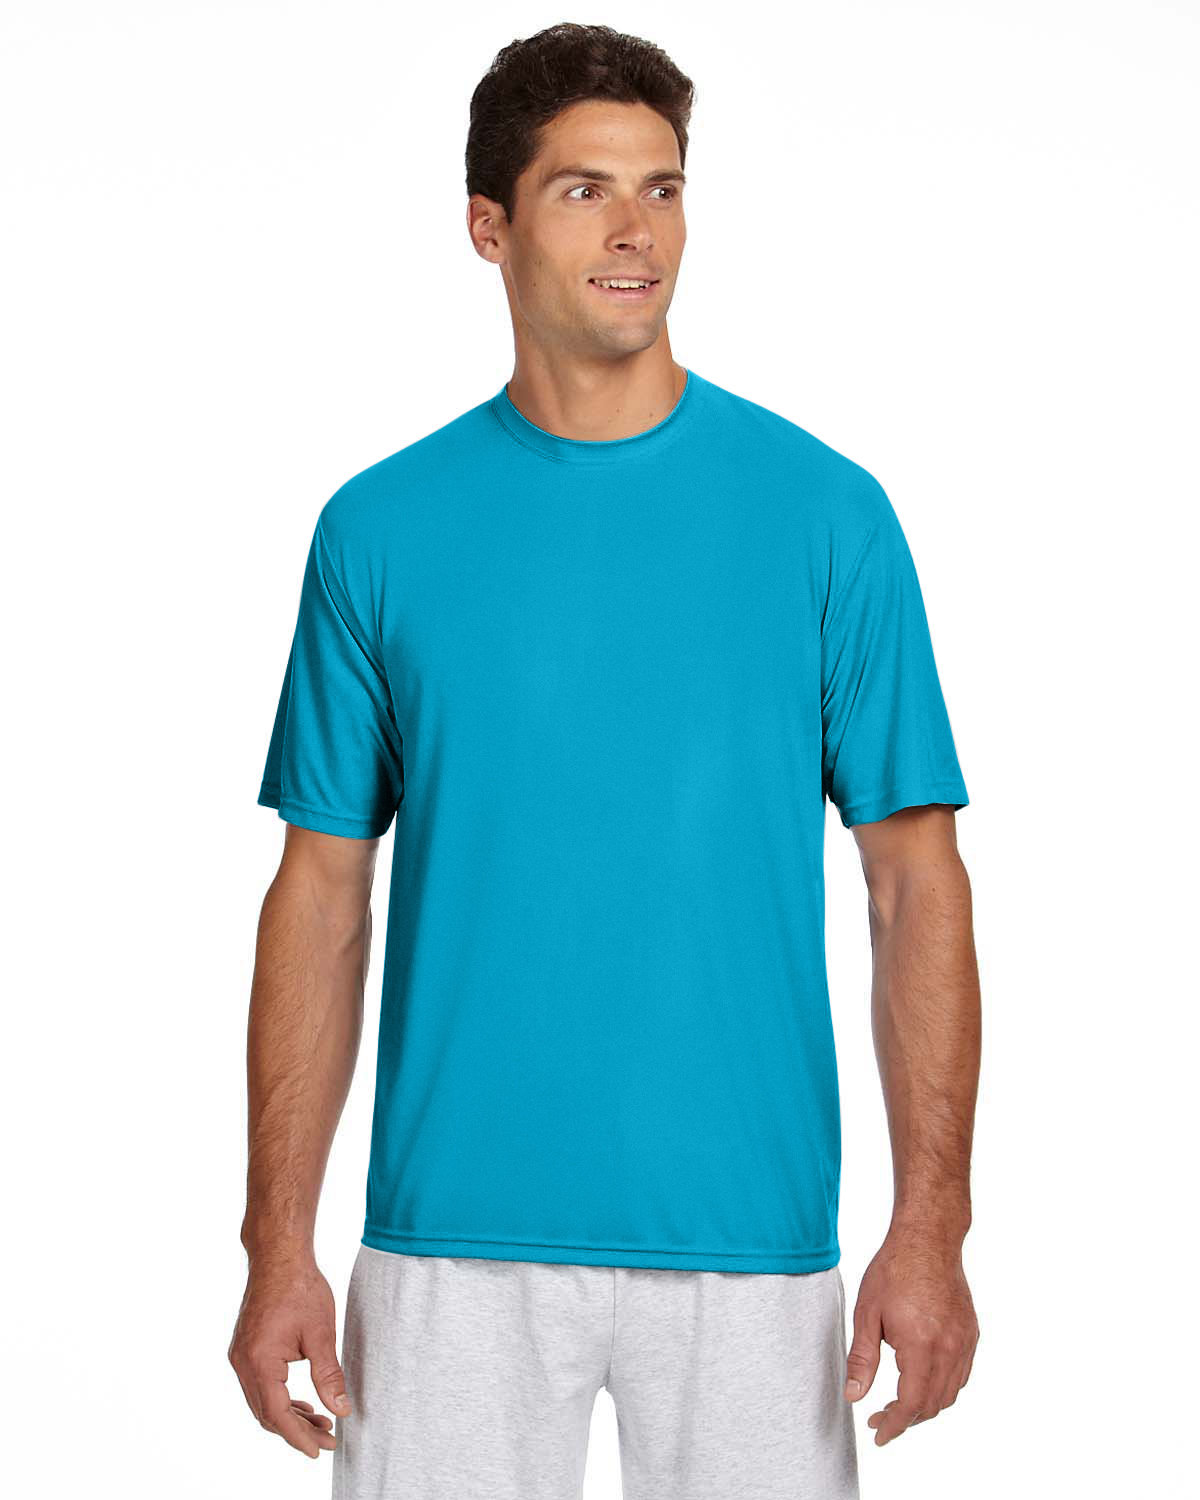 A4 Men's Cooling Performance T-Shirt ELECTRIC BLUE